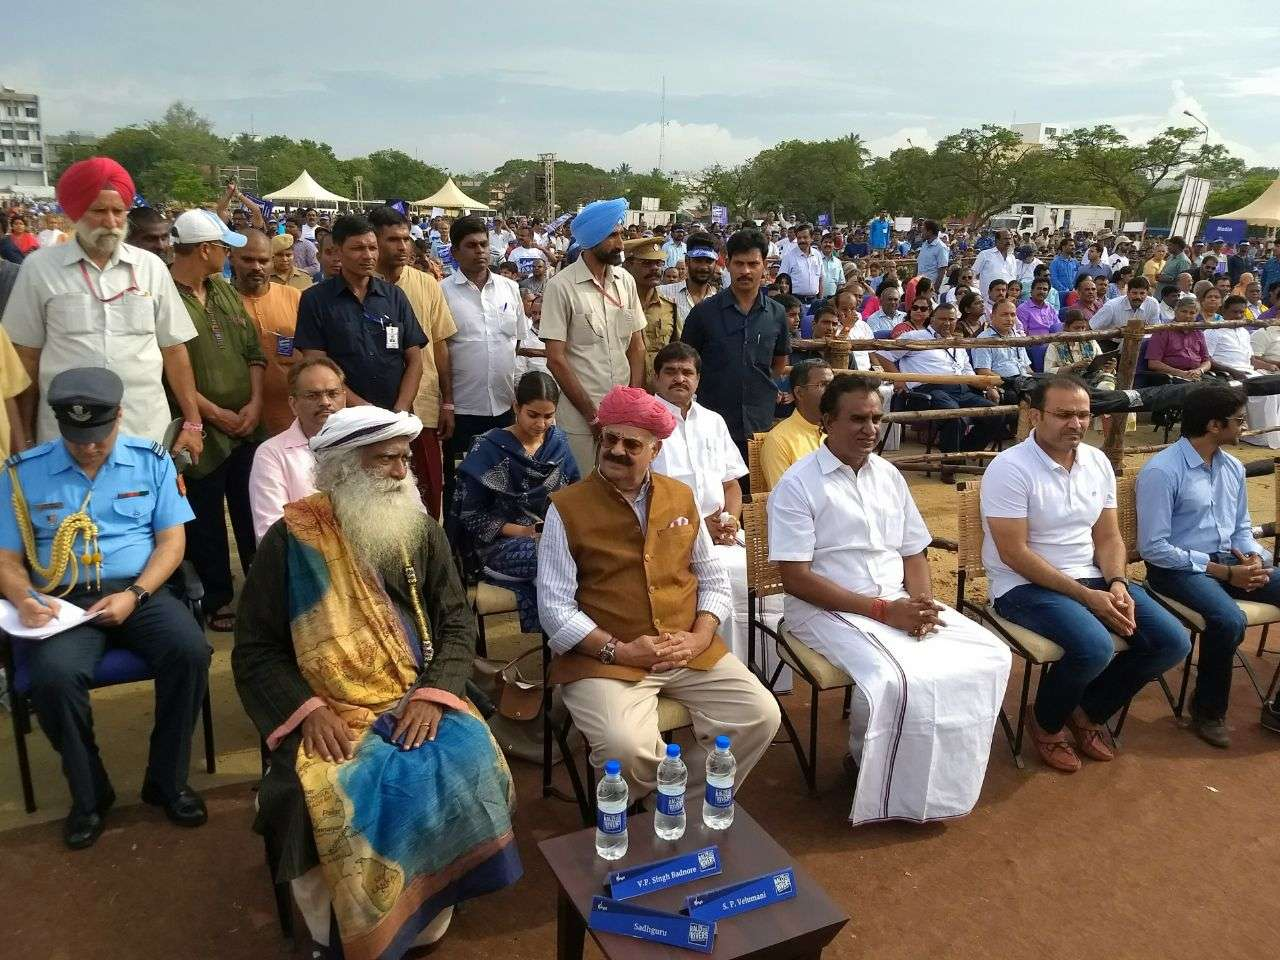 Rally For Rivers Sadhguru and Chief Guests Reaches the Venue Day 01 Coimbatore 04